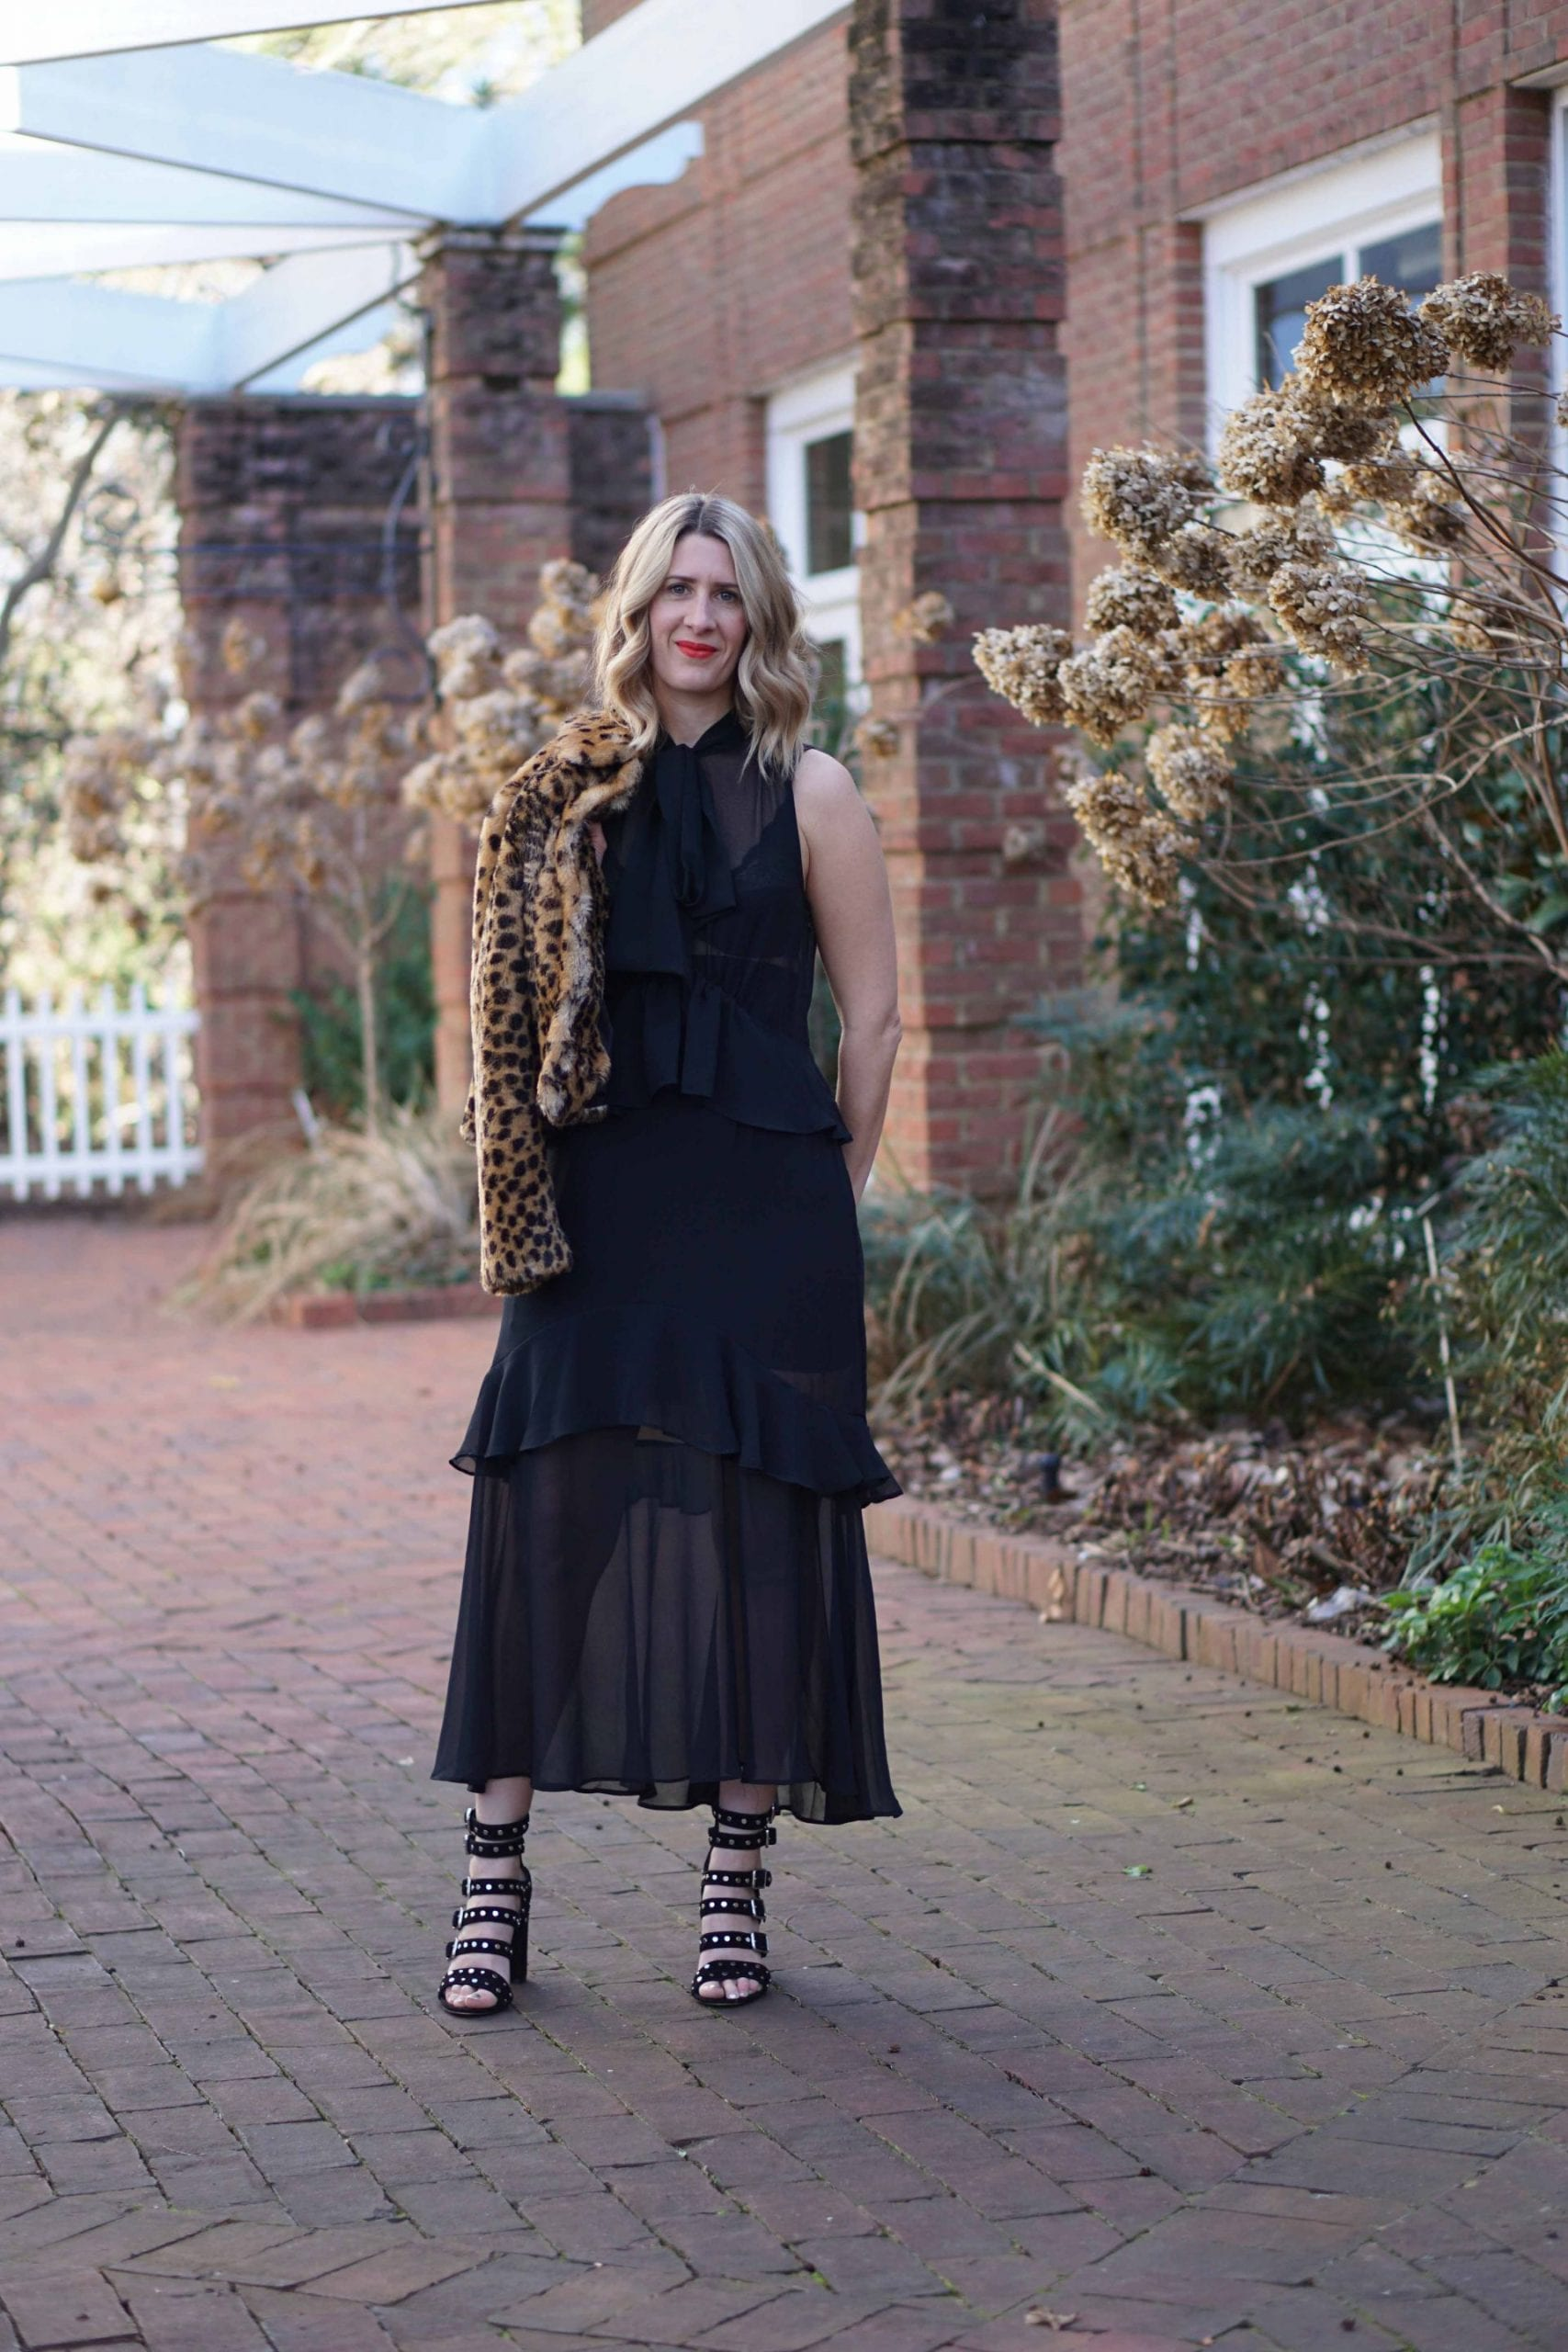 A black sheer dress worn for the evening with a leopard print coat